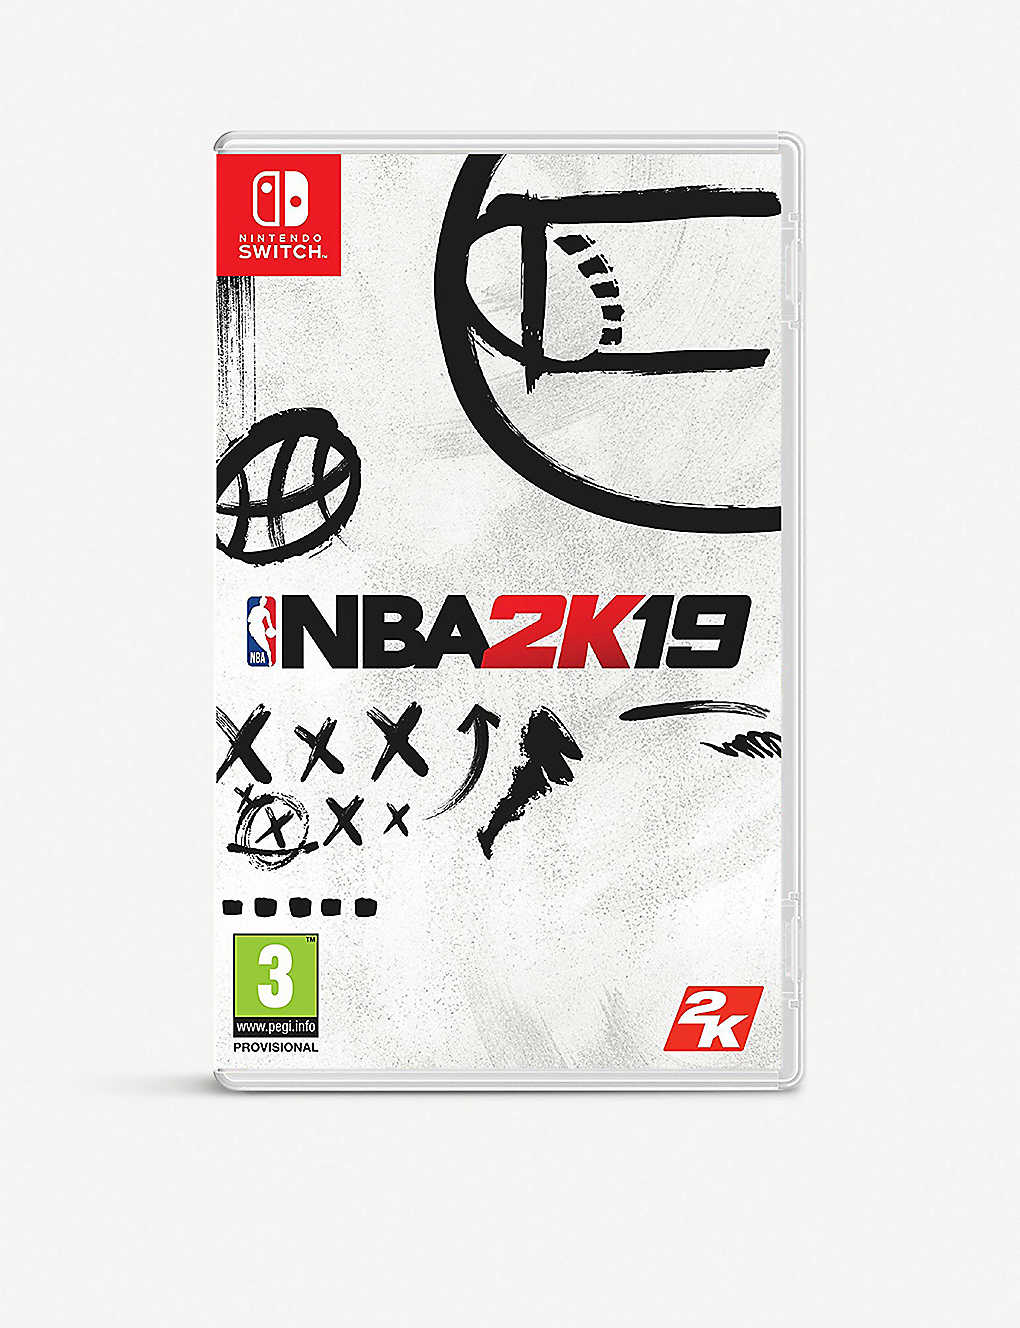 NBA 2k19 Switch game